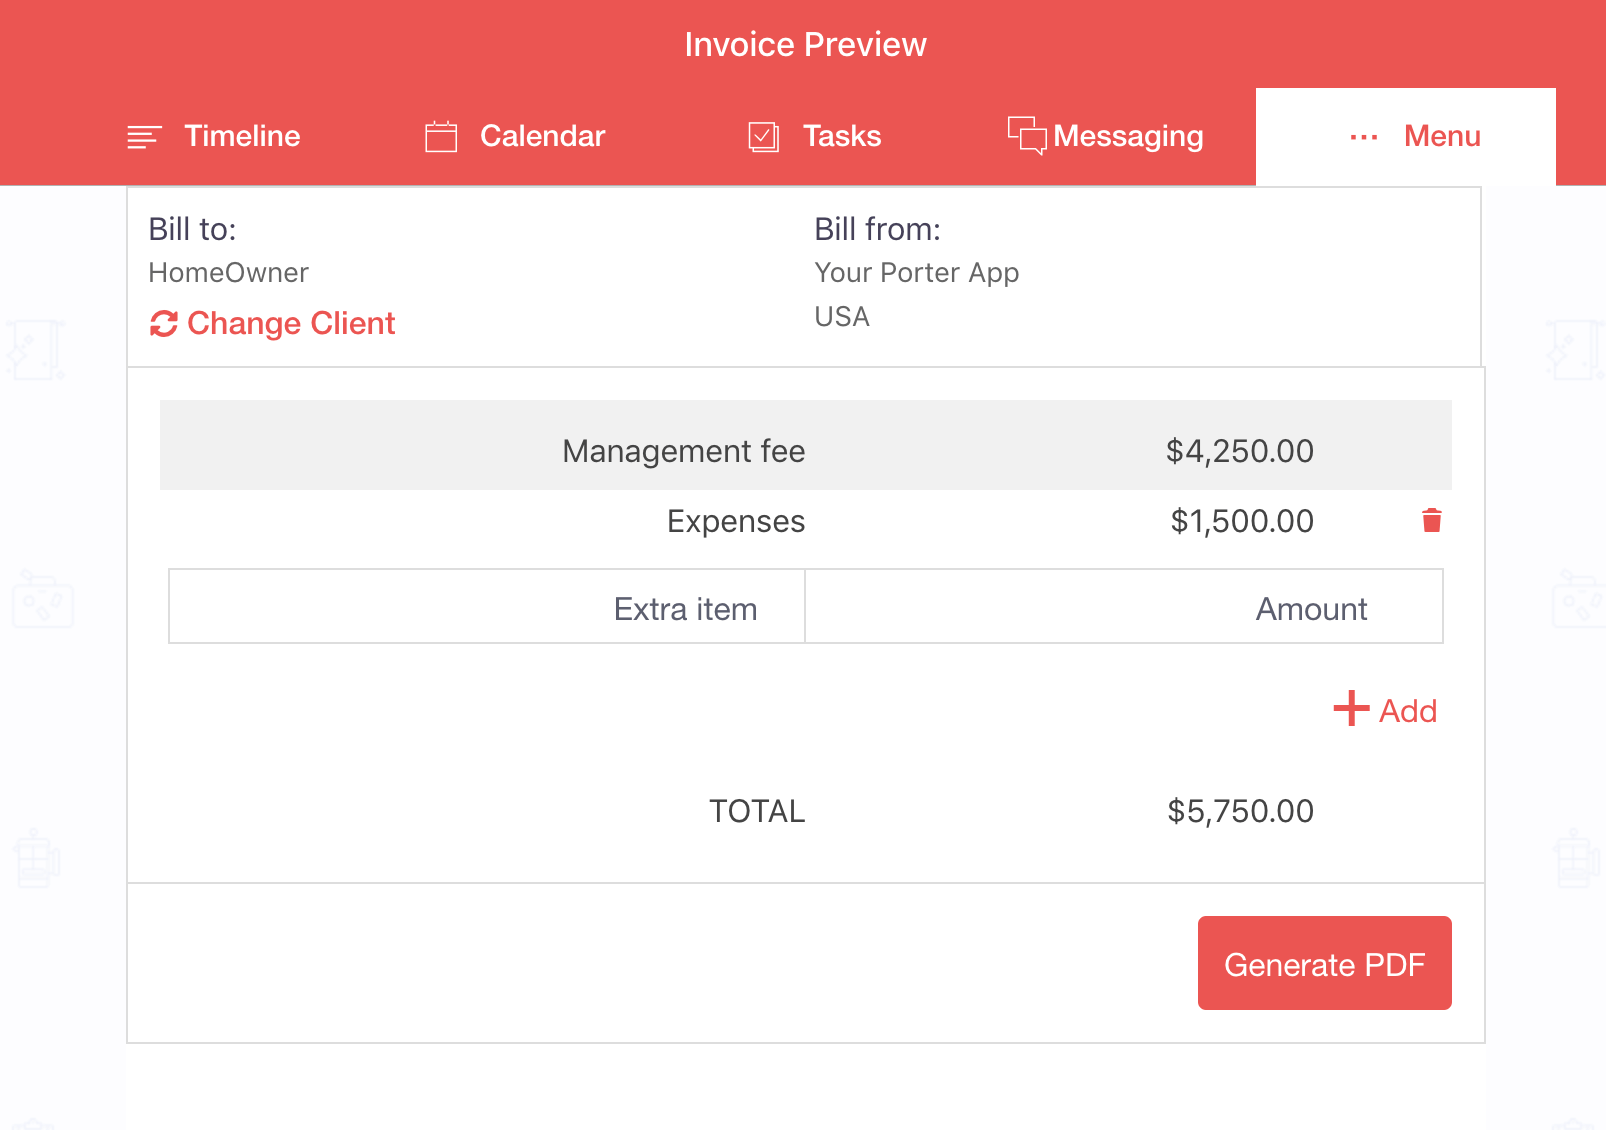 Preview of Invoice